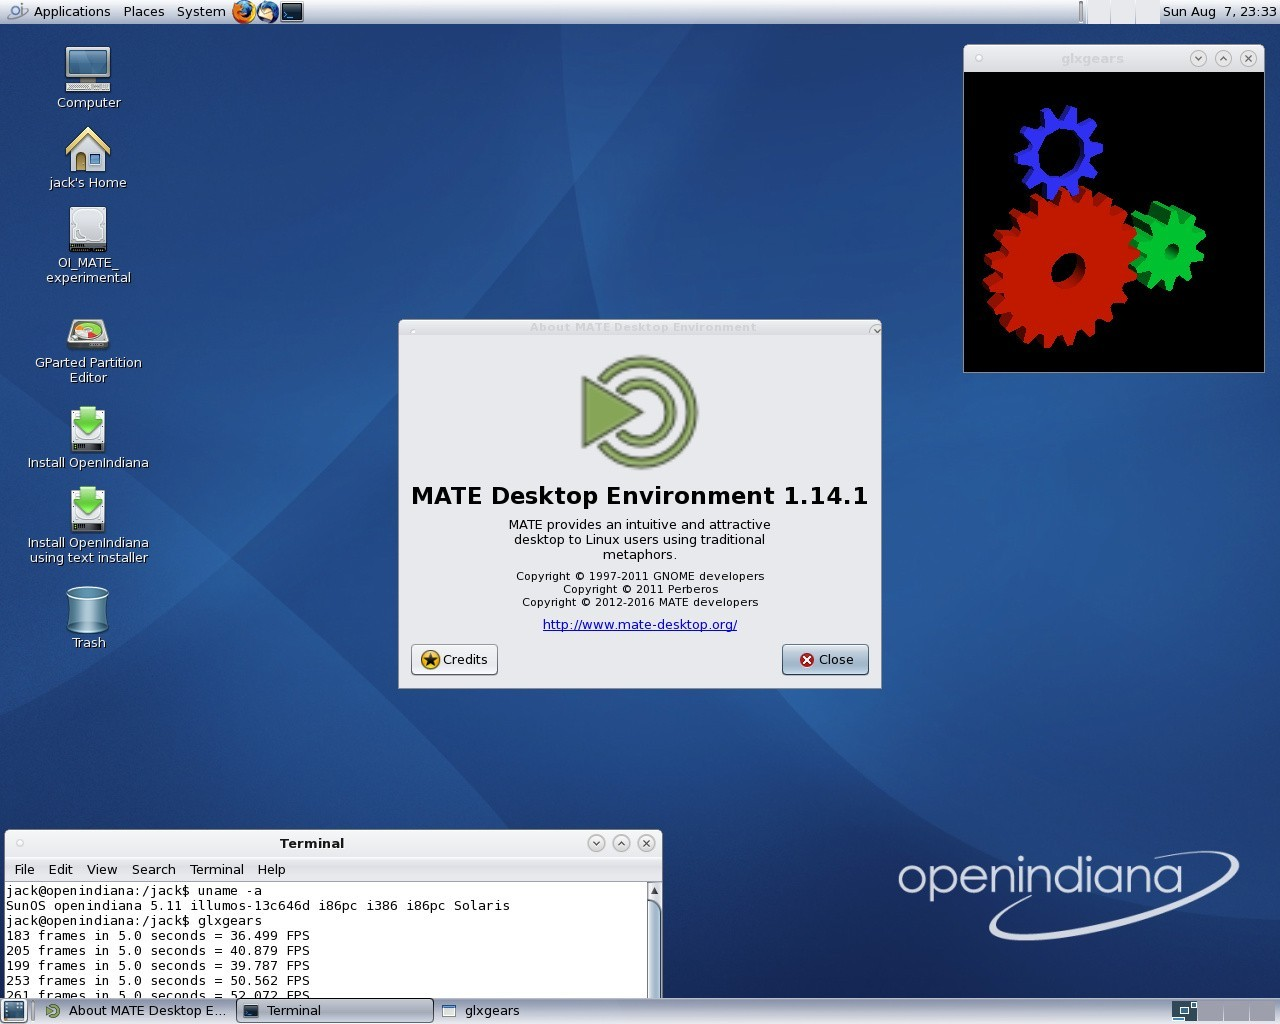 openindiana-2016-10-unix-os-migrates-to-freebsd-loader-adds-mate-1-14-desktop-509877-2